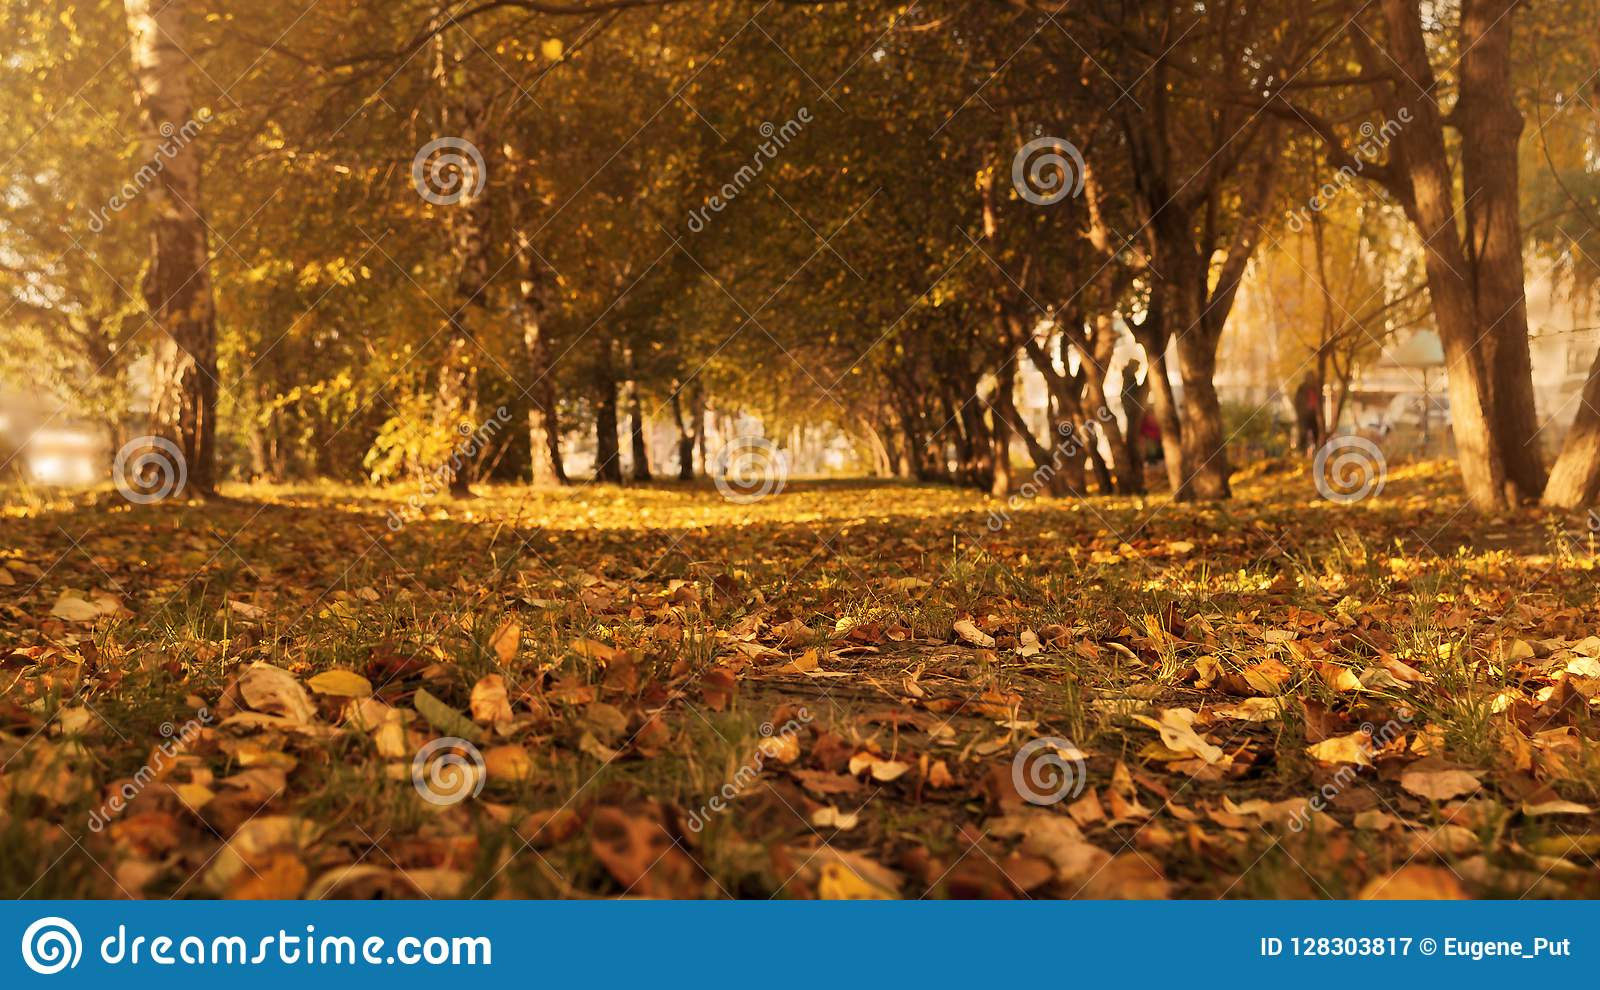 Autumn Trees, Colorful Fall Foliage. City Park Alley.